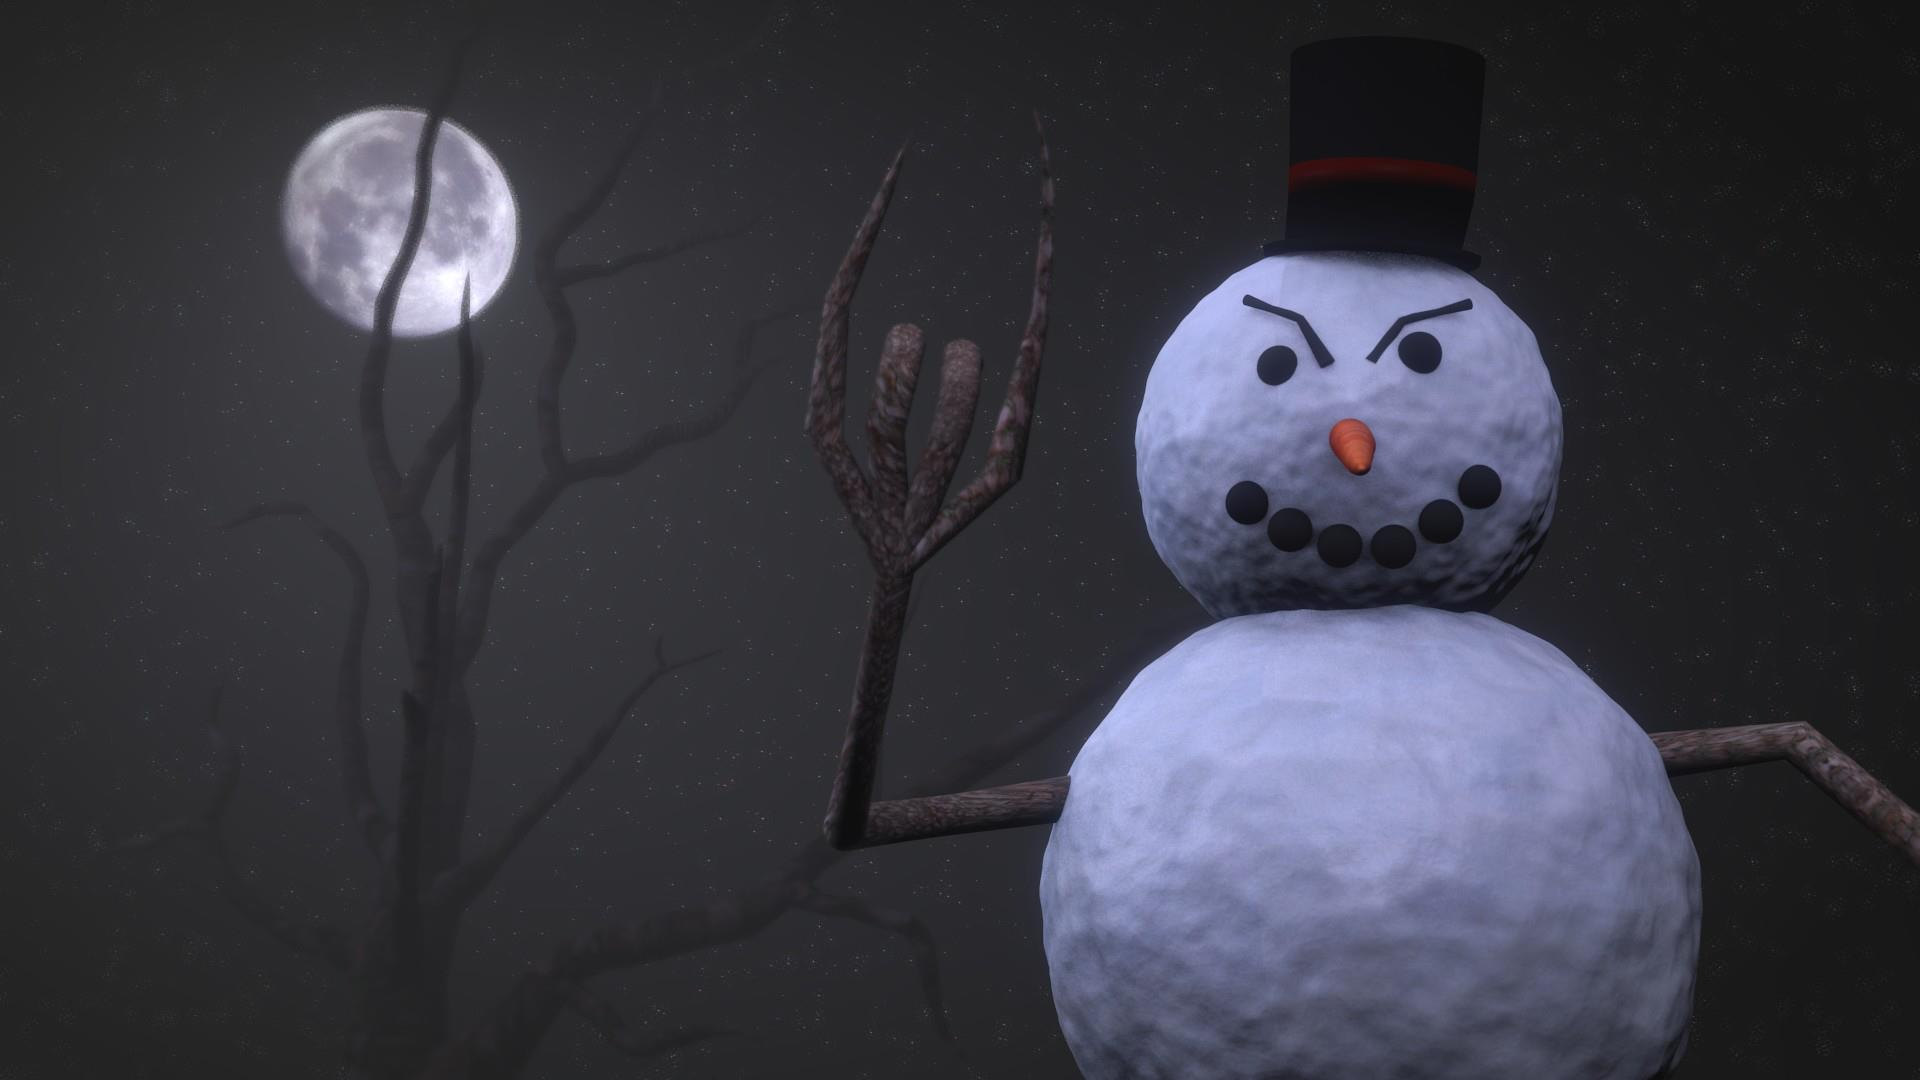 Angry Snowman by tobiasforsling on DeviantArt